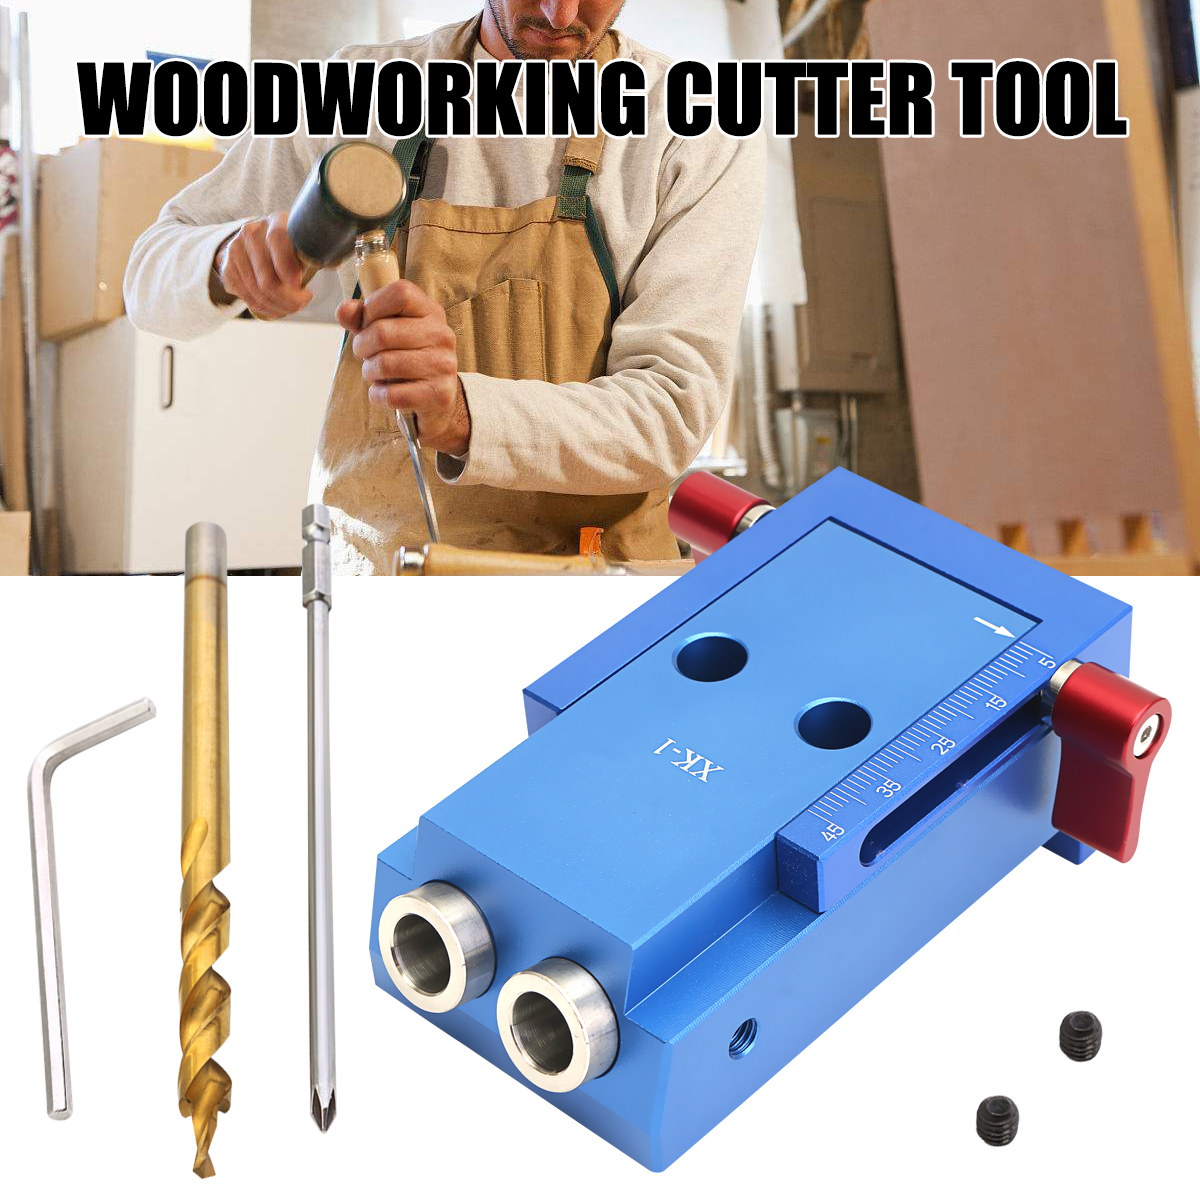 цена на Aluminum Alloy Pocke t Hole Jig Kit With Step Drill Bit Woodworking Cutter Tool 9.5mm Collar Manual Wood Drilling Hole Saw